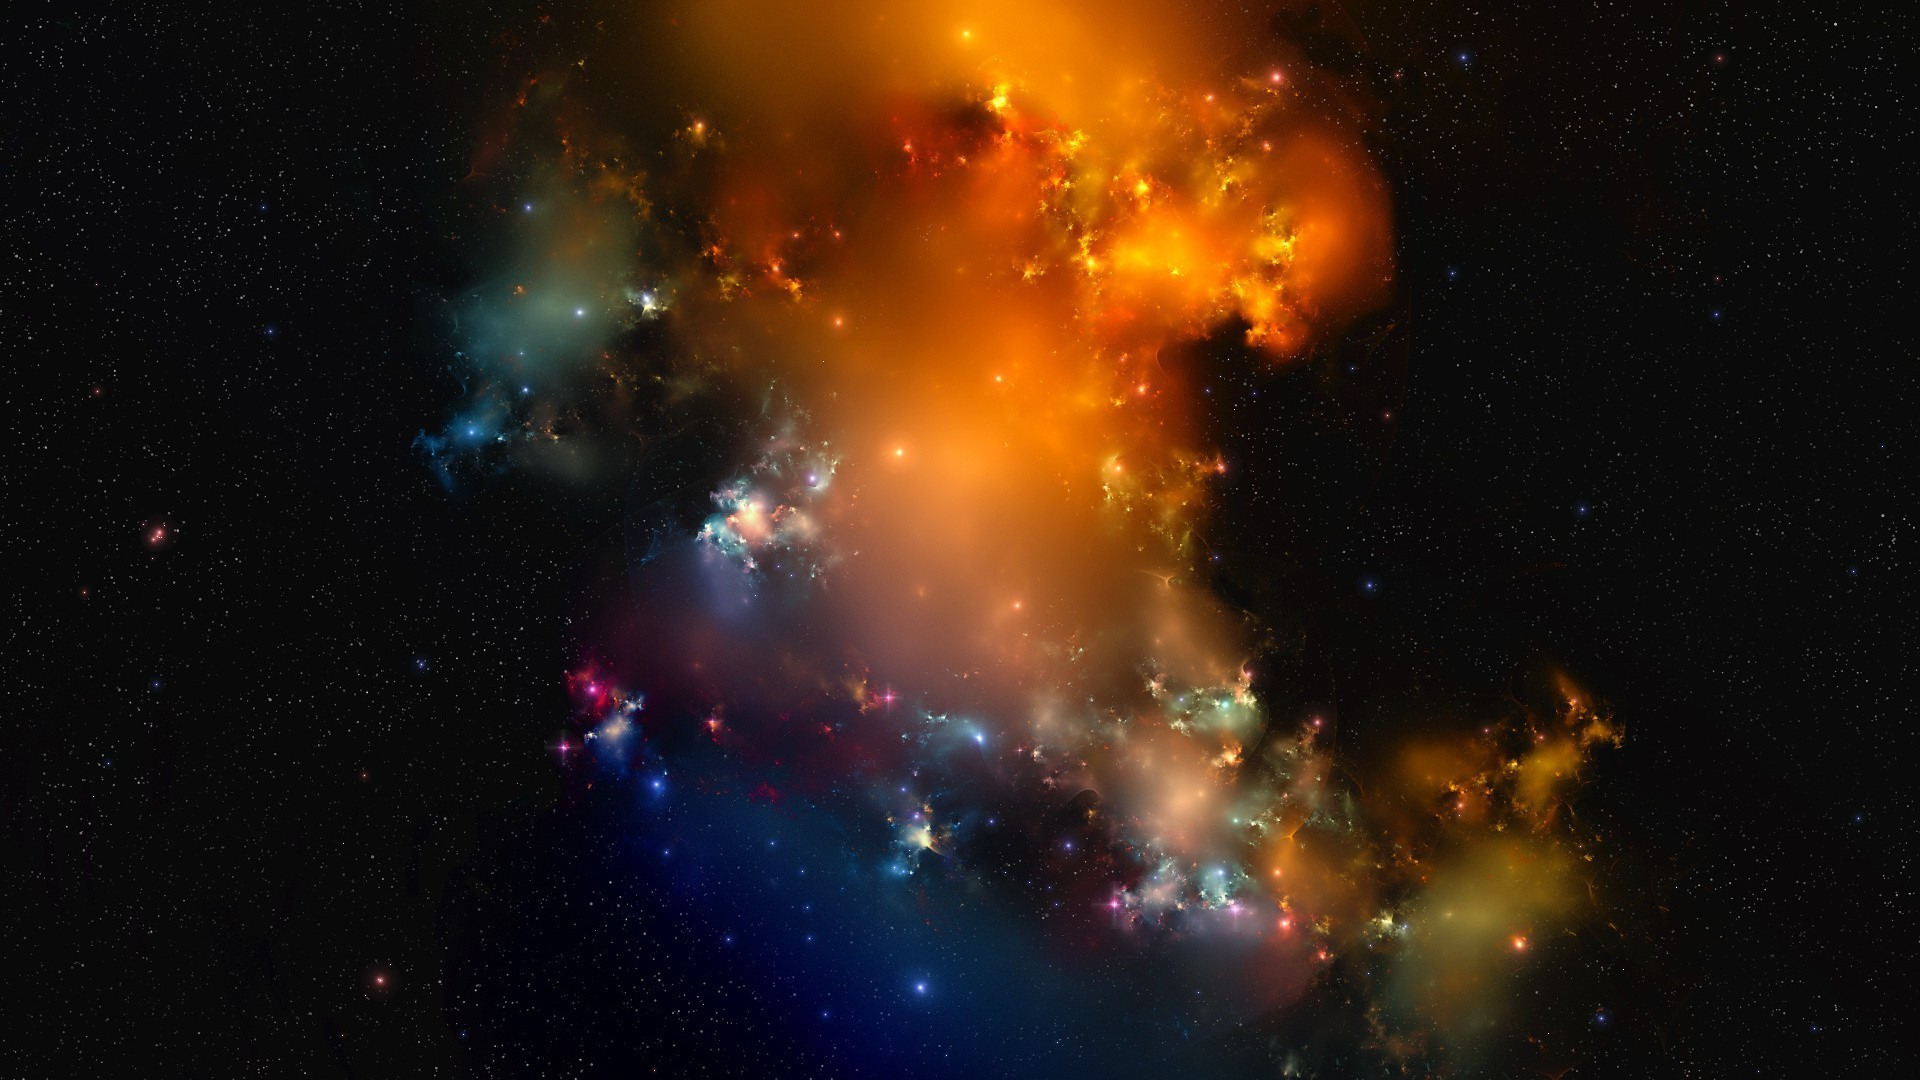 Colorful space wallpapers 73 images - Space wallpaper 2160x1920 ...